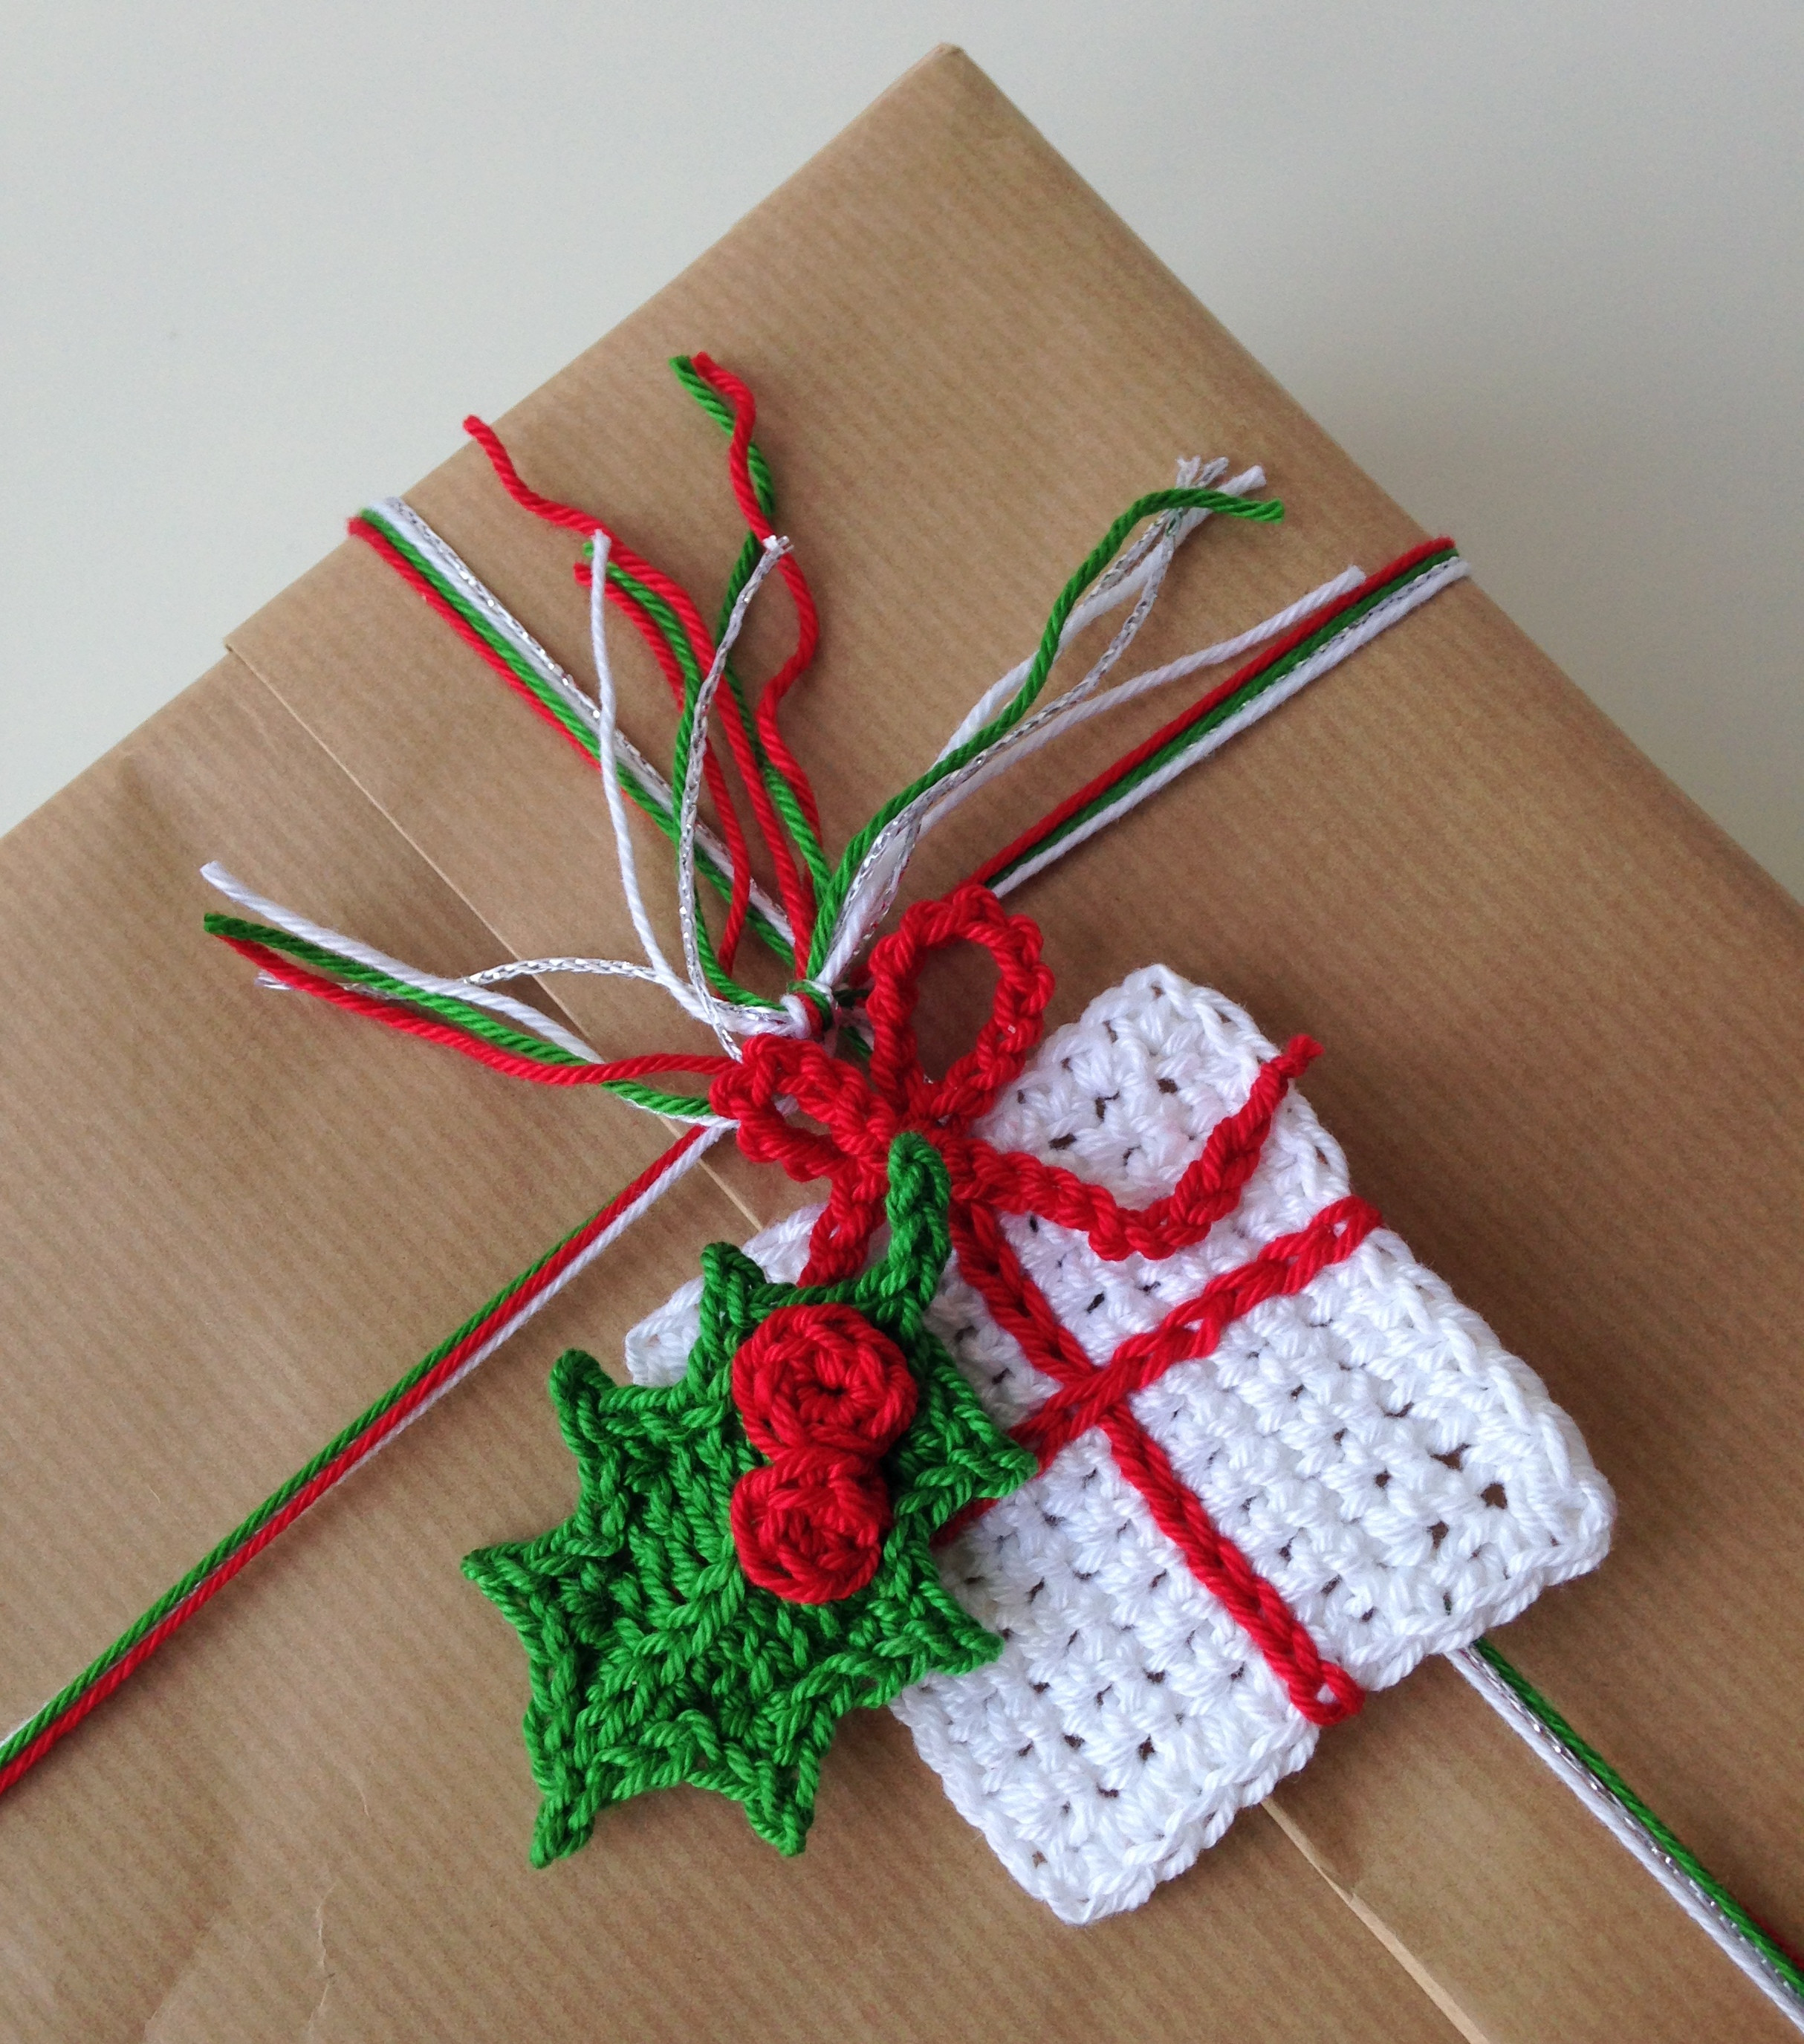 Crochet Christmas Gifts Elegant Crocheted Presents Gifts – Marrose Of Innovative 44 Images Crochet Christmas Gifts